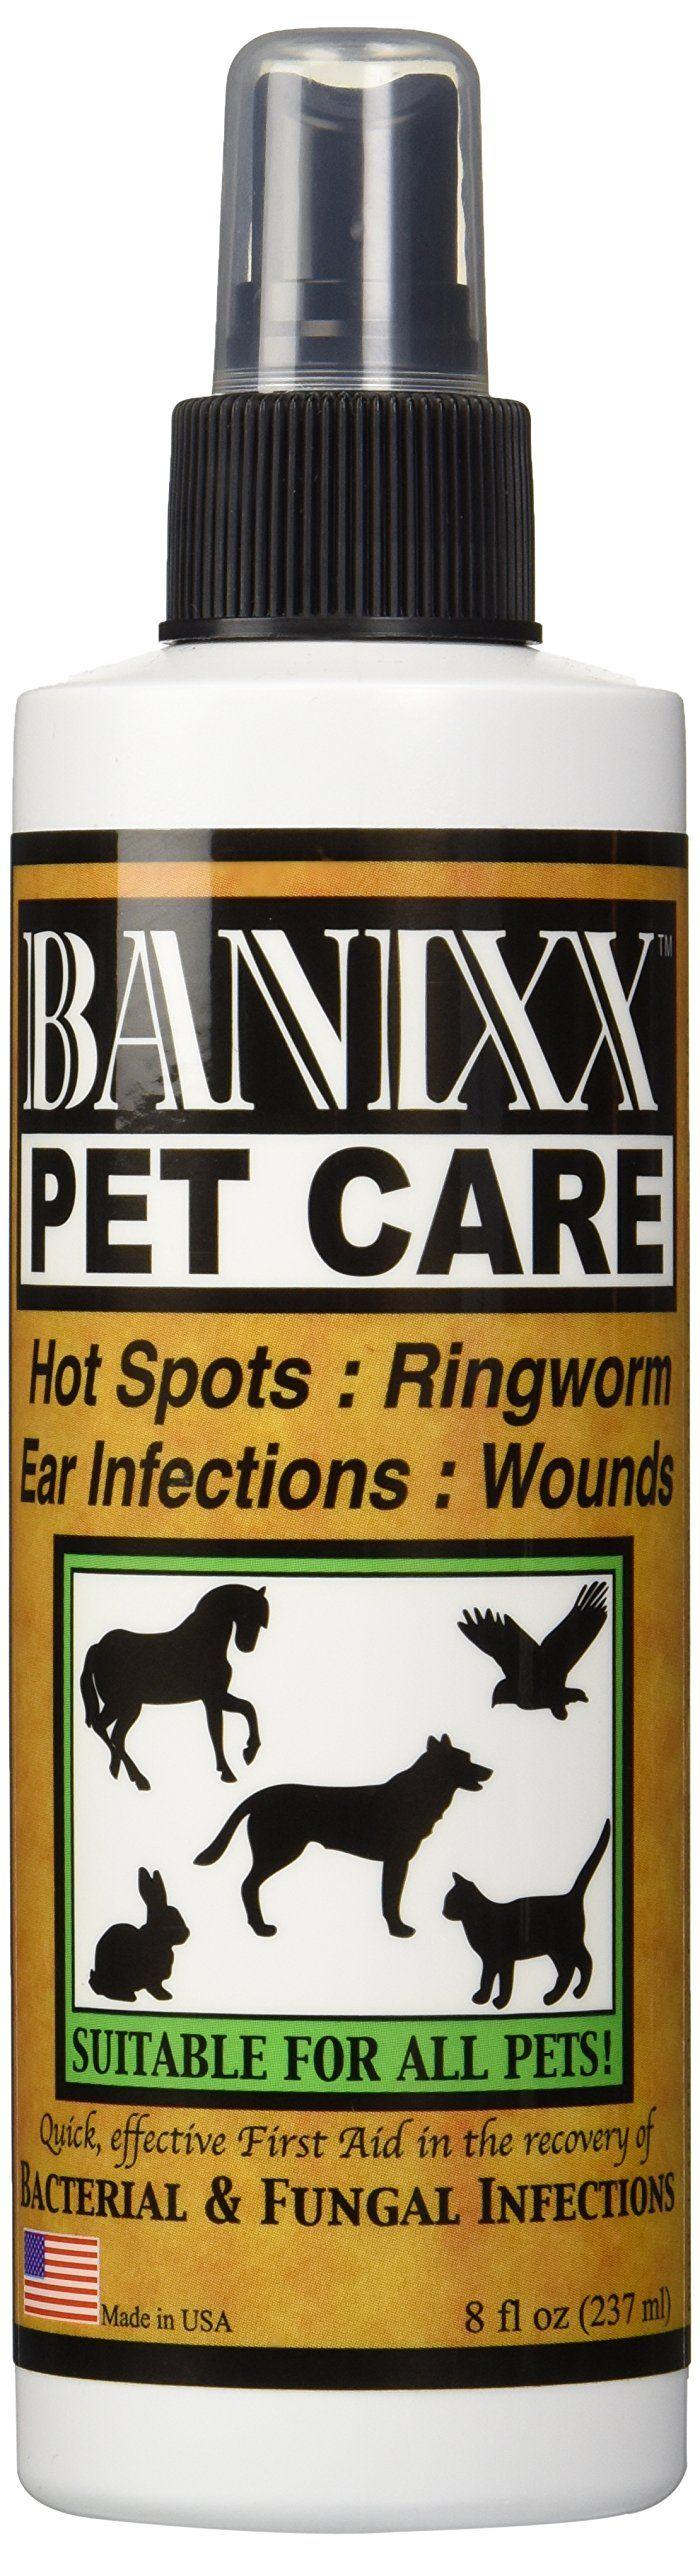 See where to purchase Banixx Pet Care, 8oz at http